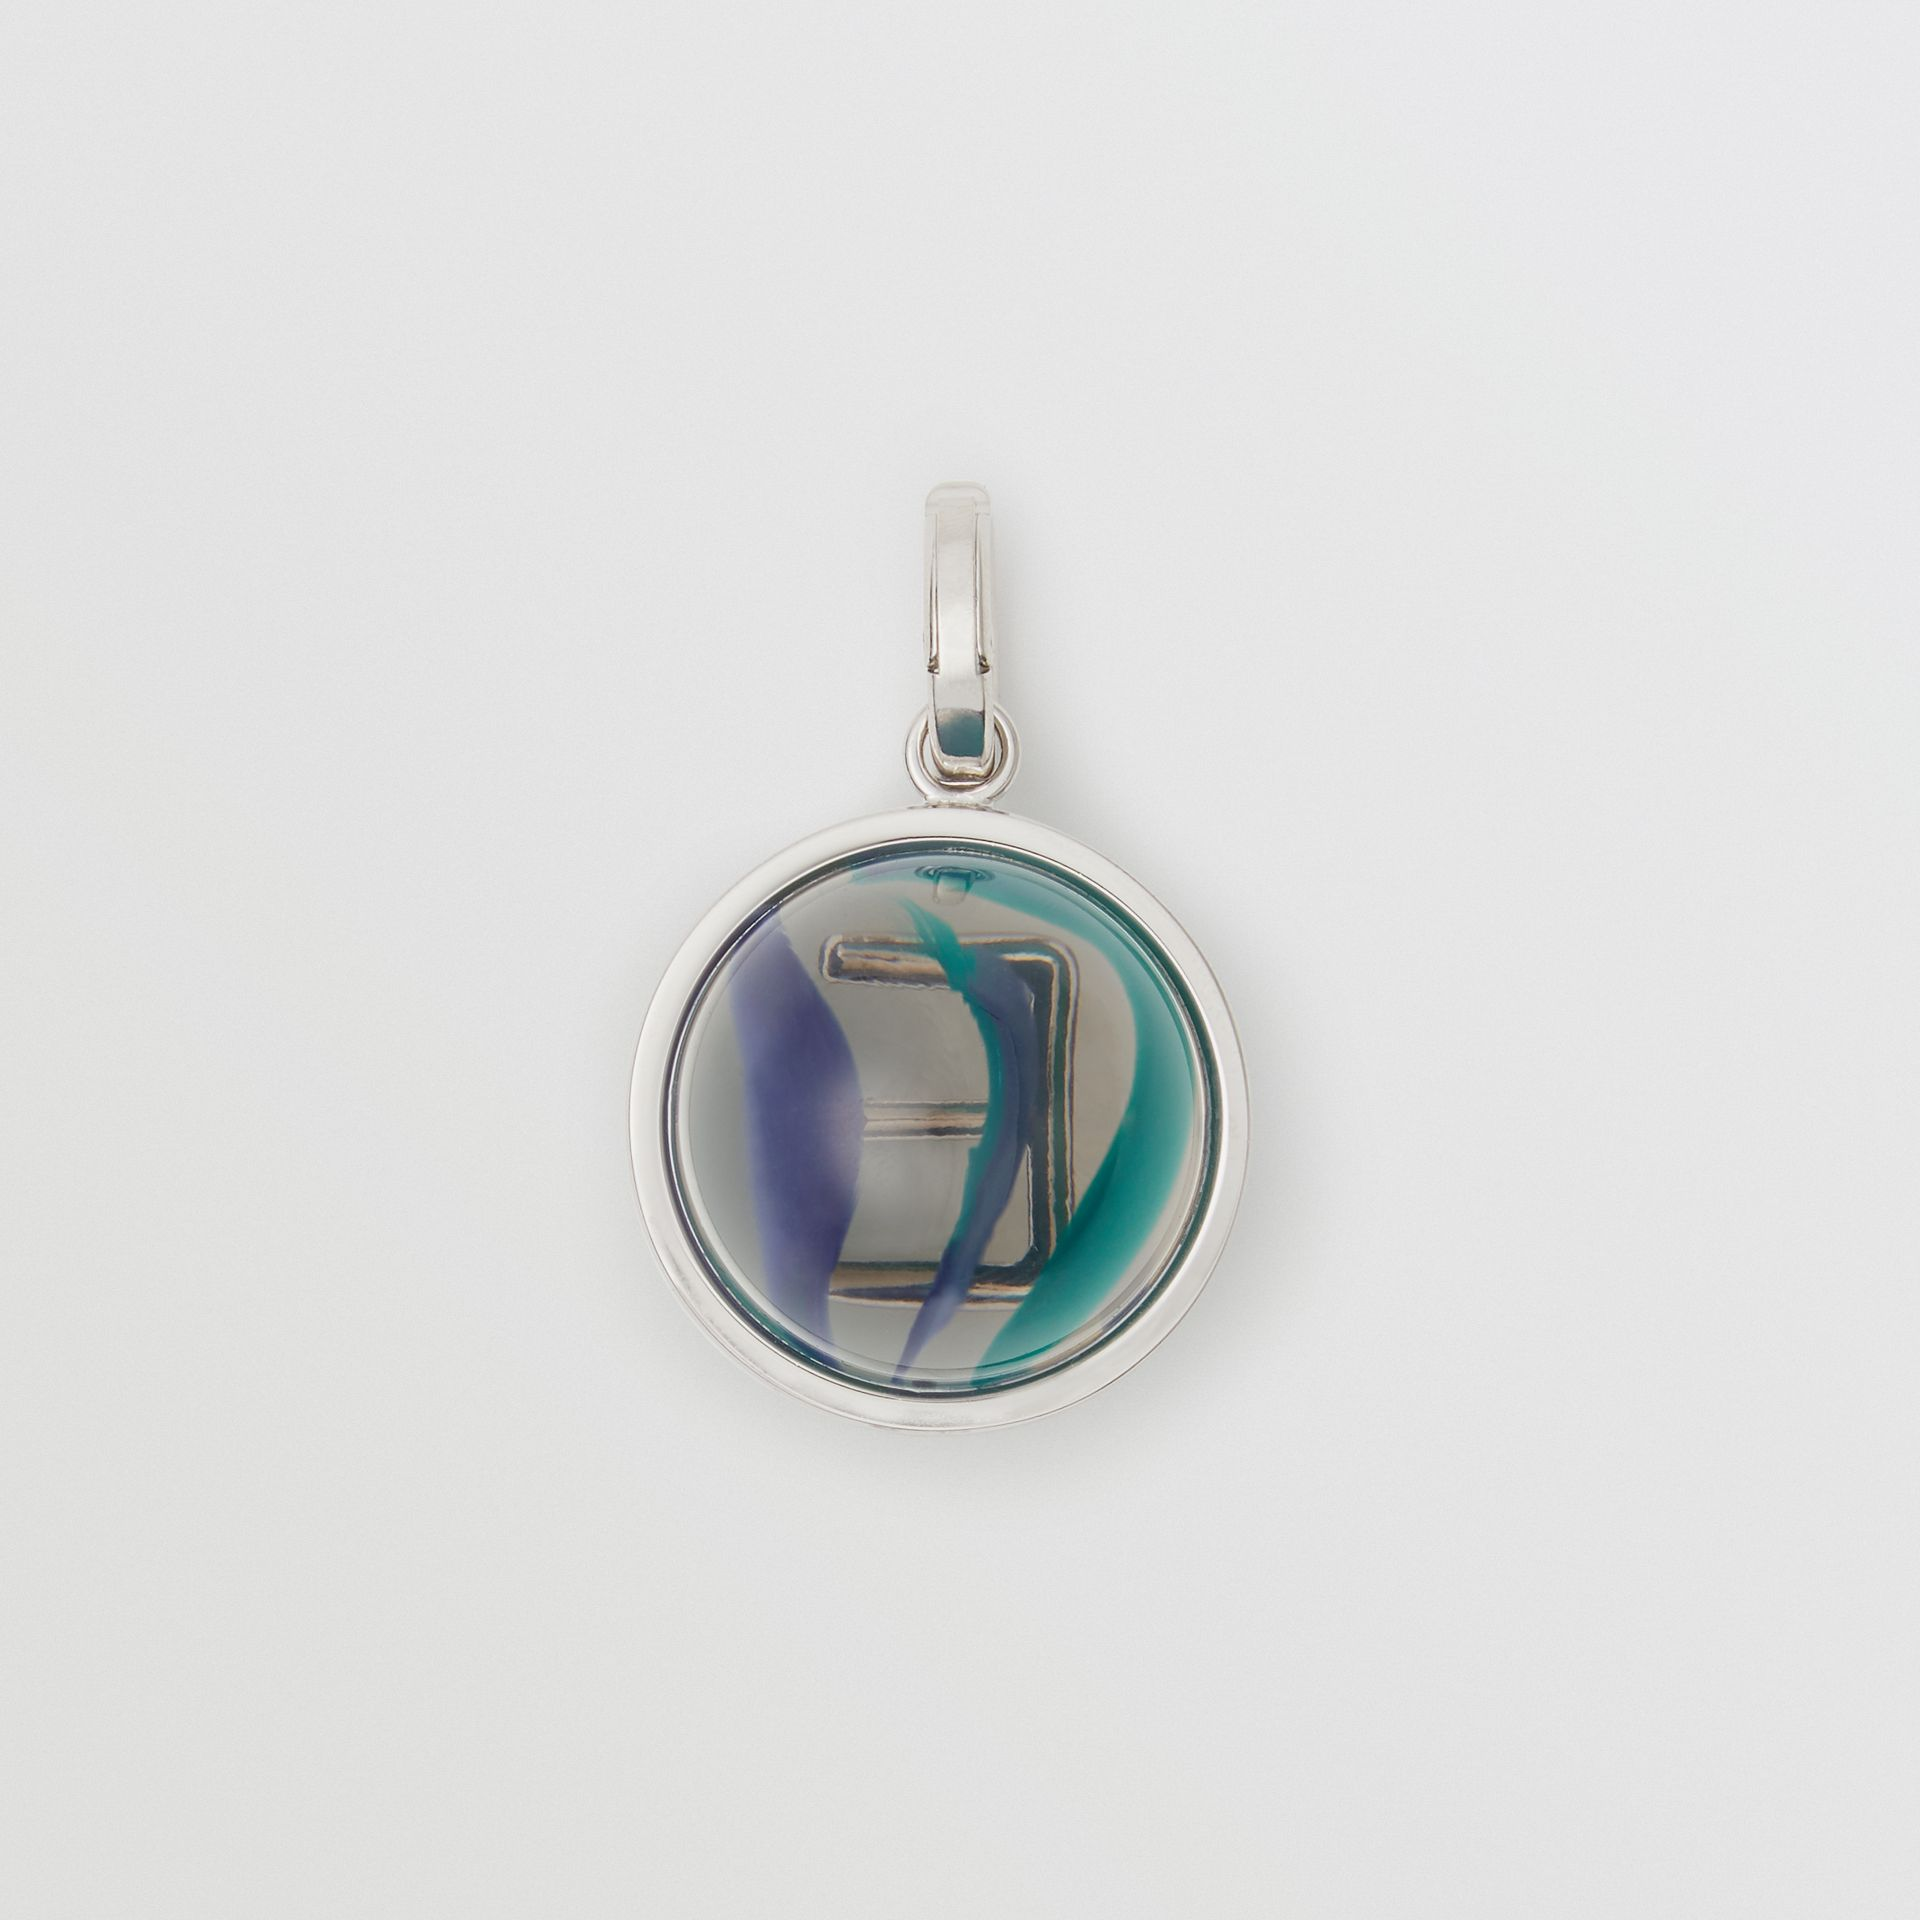 Marbled Resin 'E' Alphabet Charm in Palladio/ocean Blue - Women | Burberry - gallery image 3